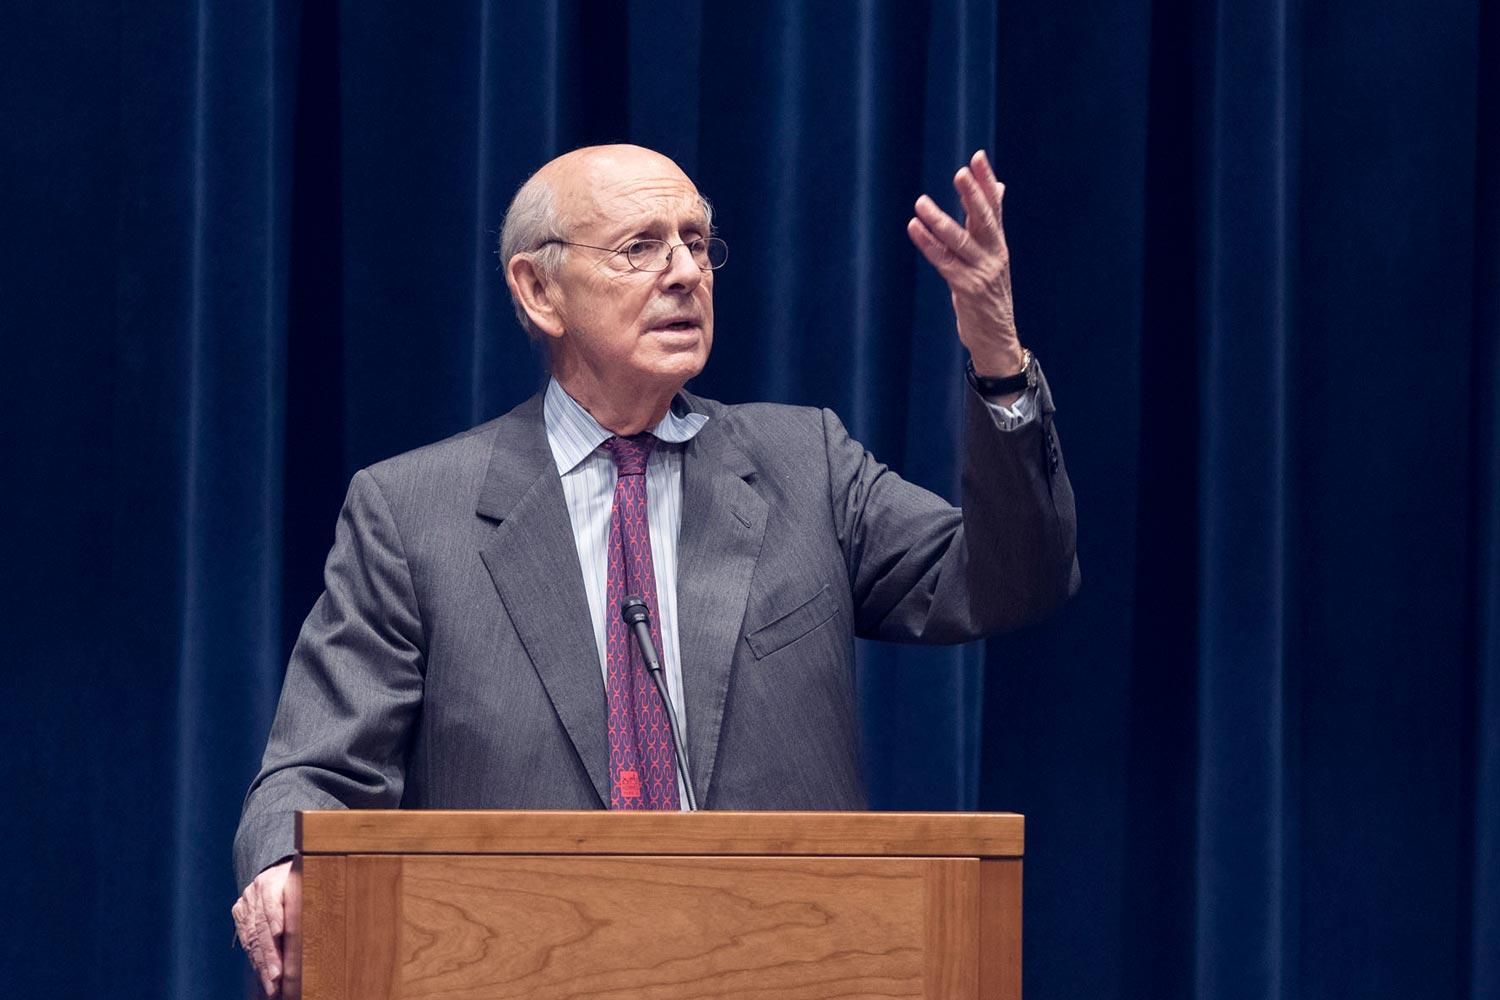 Supreme Court Justice Stephen Breyer gave a candid talk to UVA law students Thursday about how he perceives the judiciary's role.